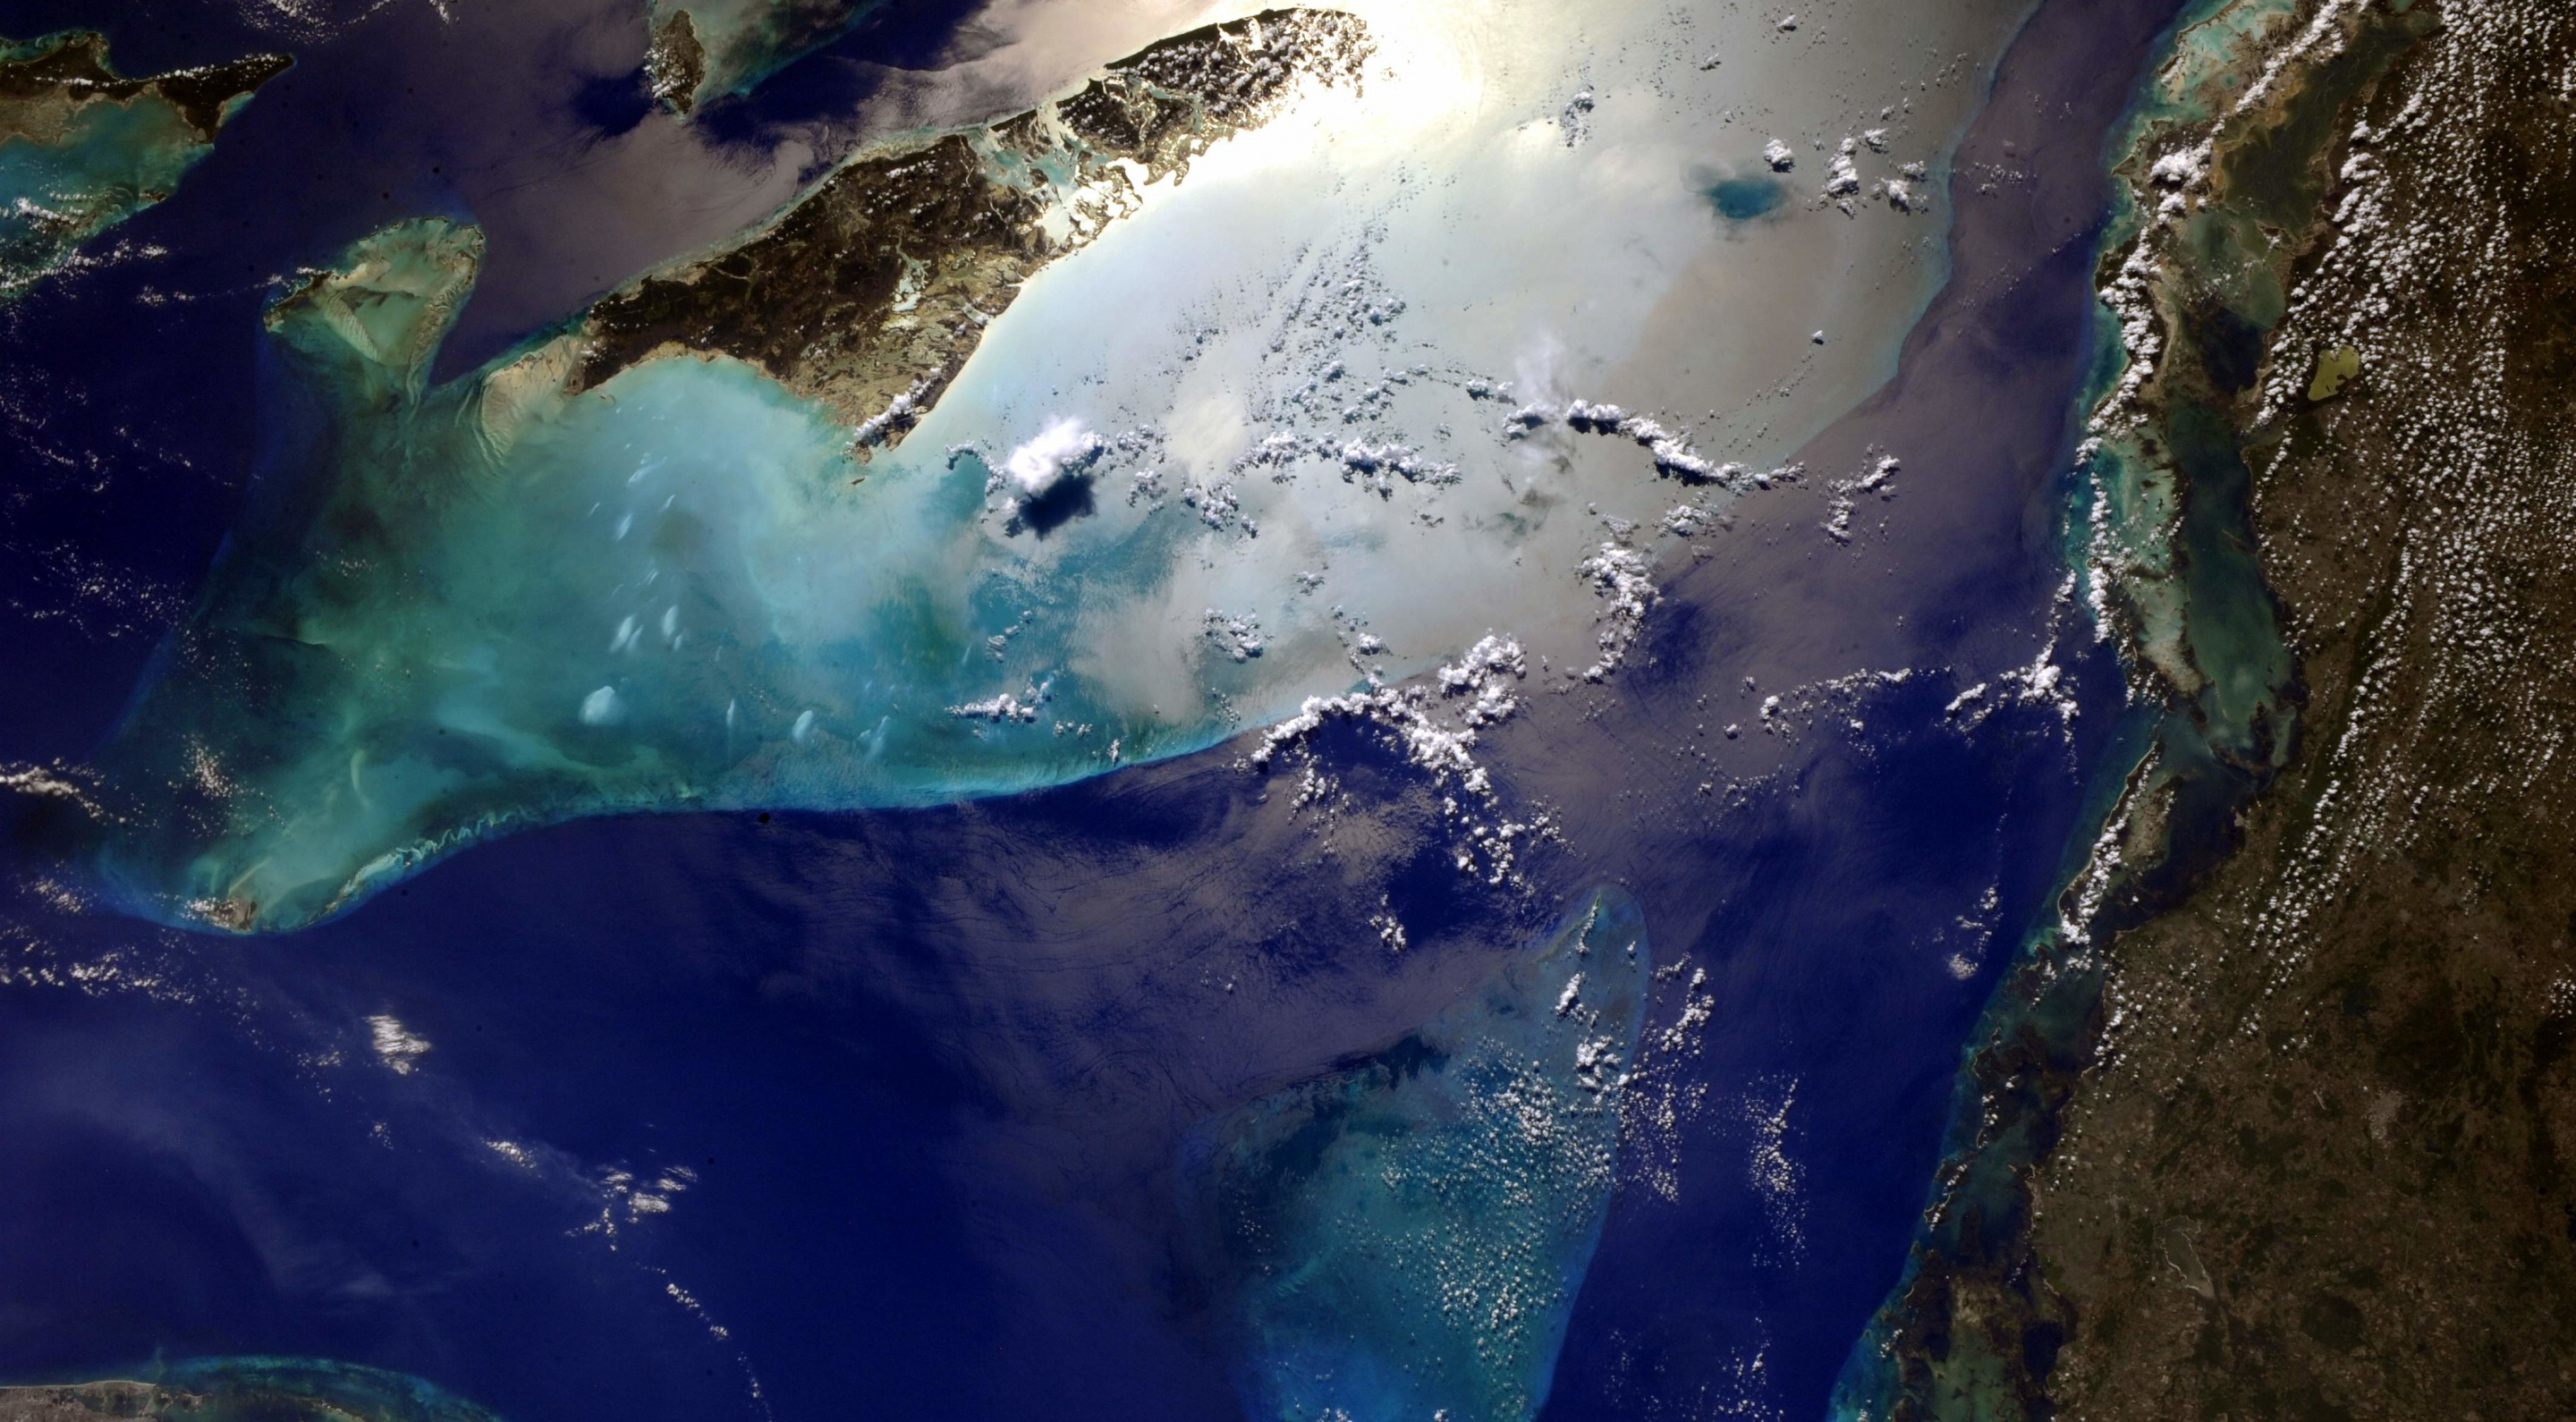 Cuba and Bahamas 4991 seen from space 55290